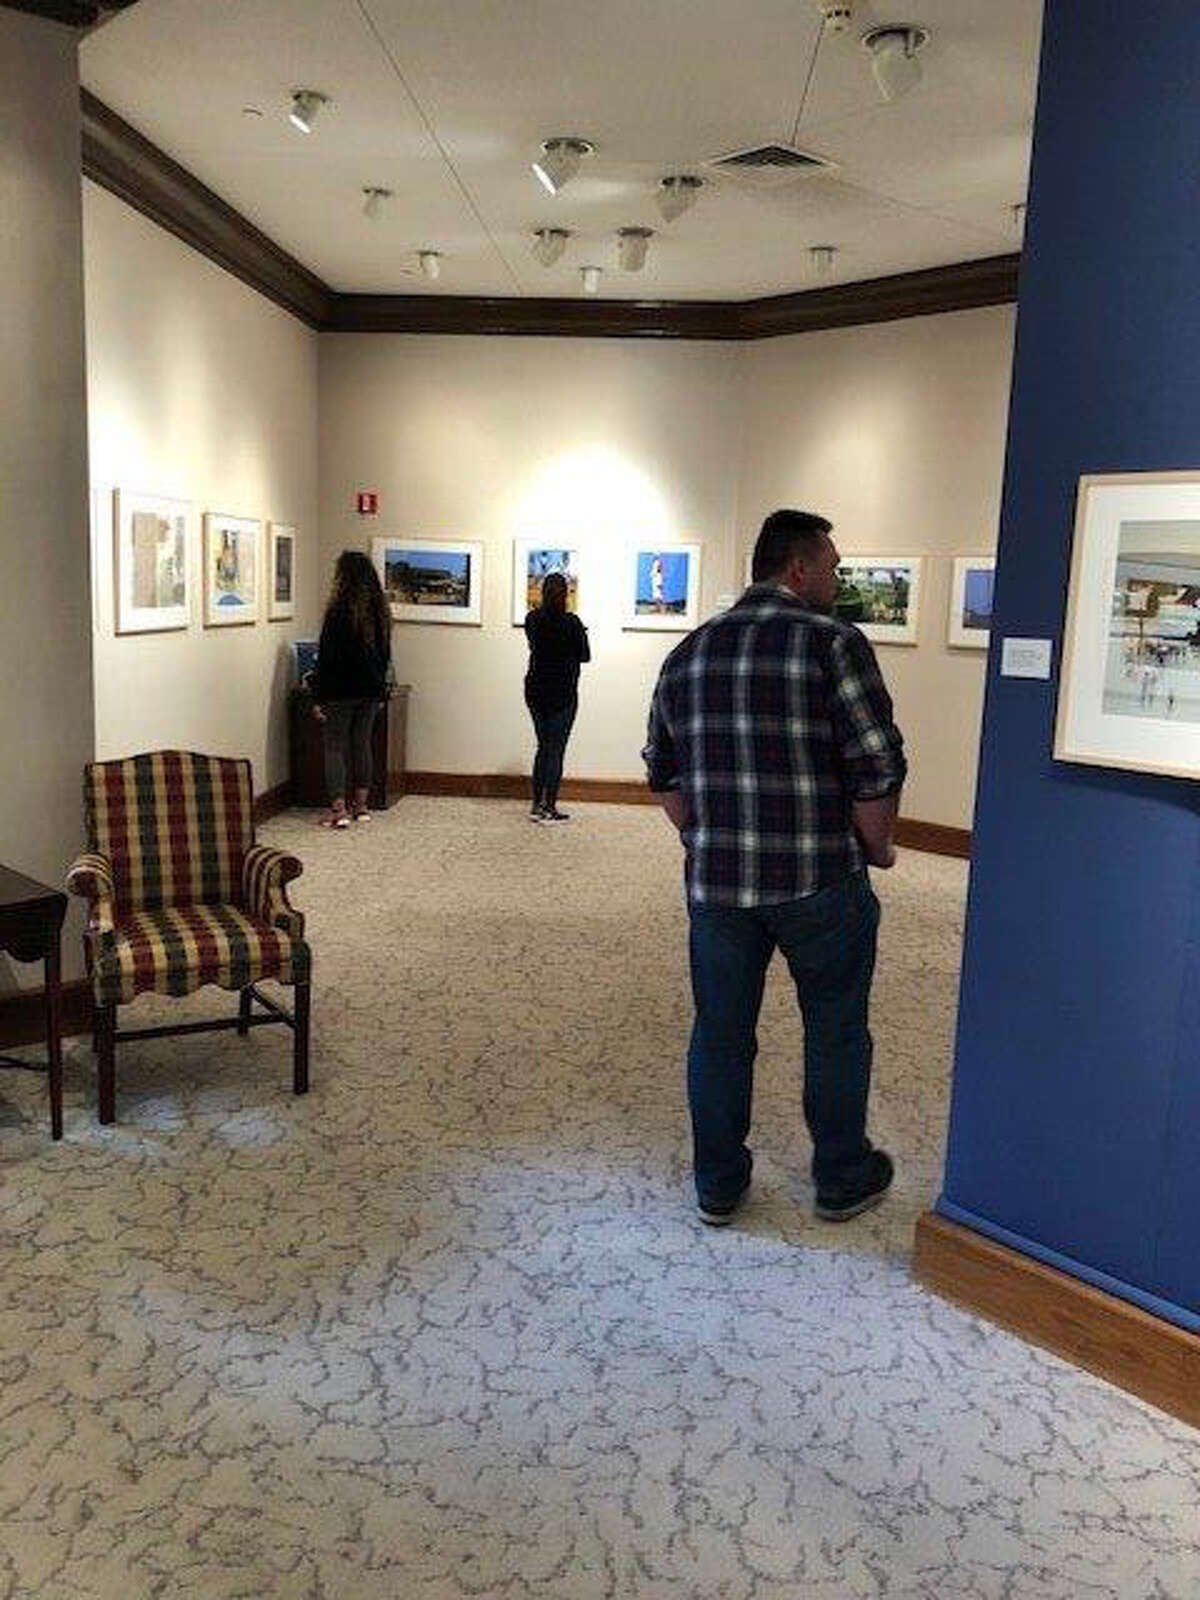 Student visitors examine paintings by artist/illustrator James Ransome now on display at the Abraham Art Gallery on WBU campus.